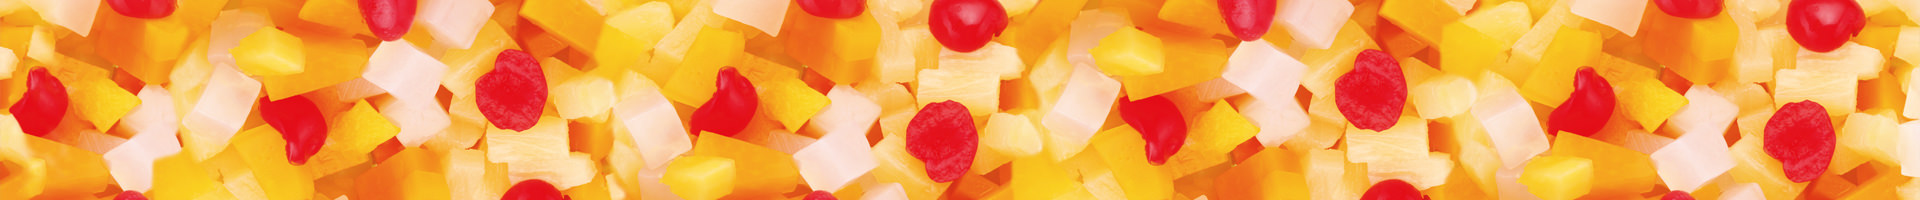 fruit-cocktail-banner